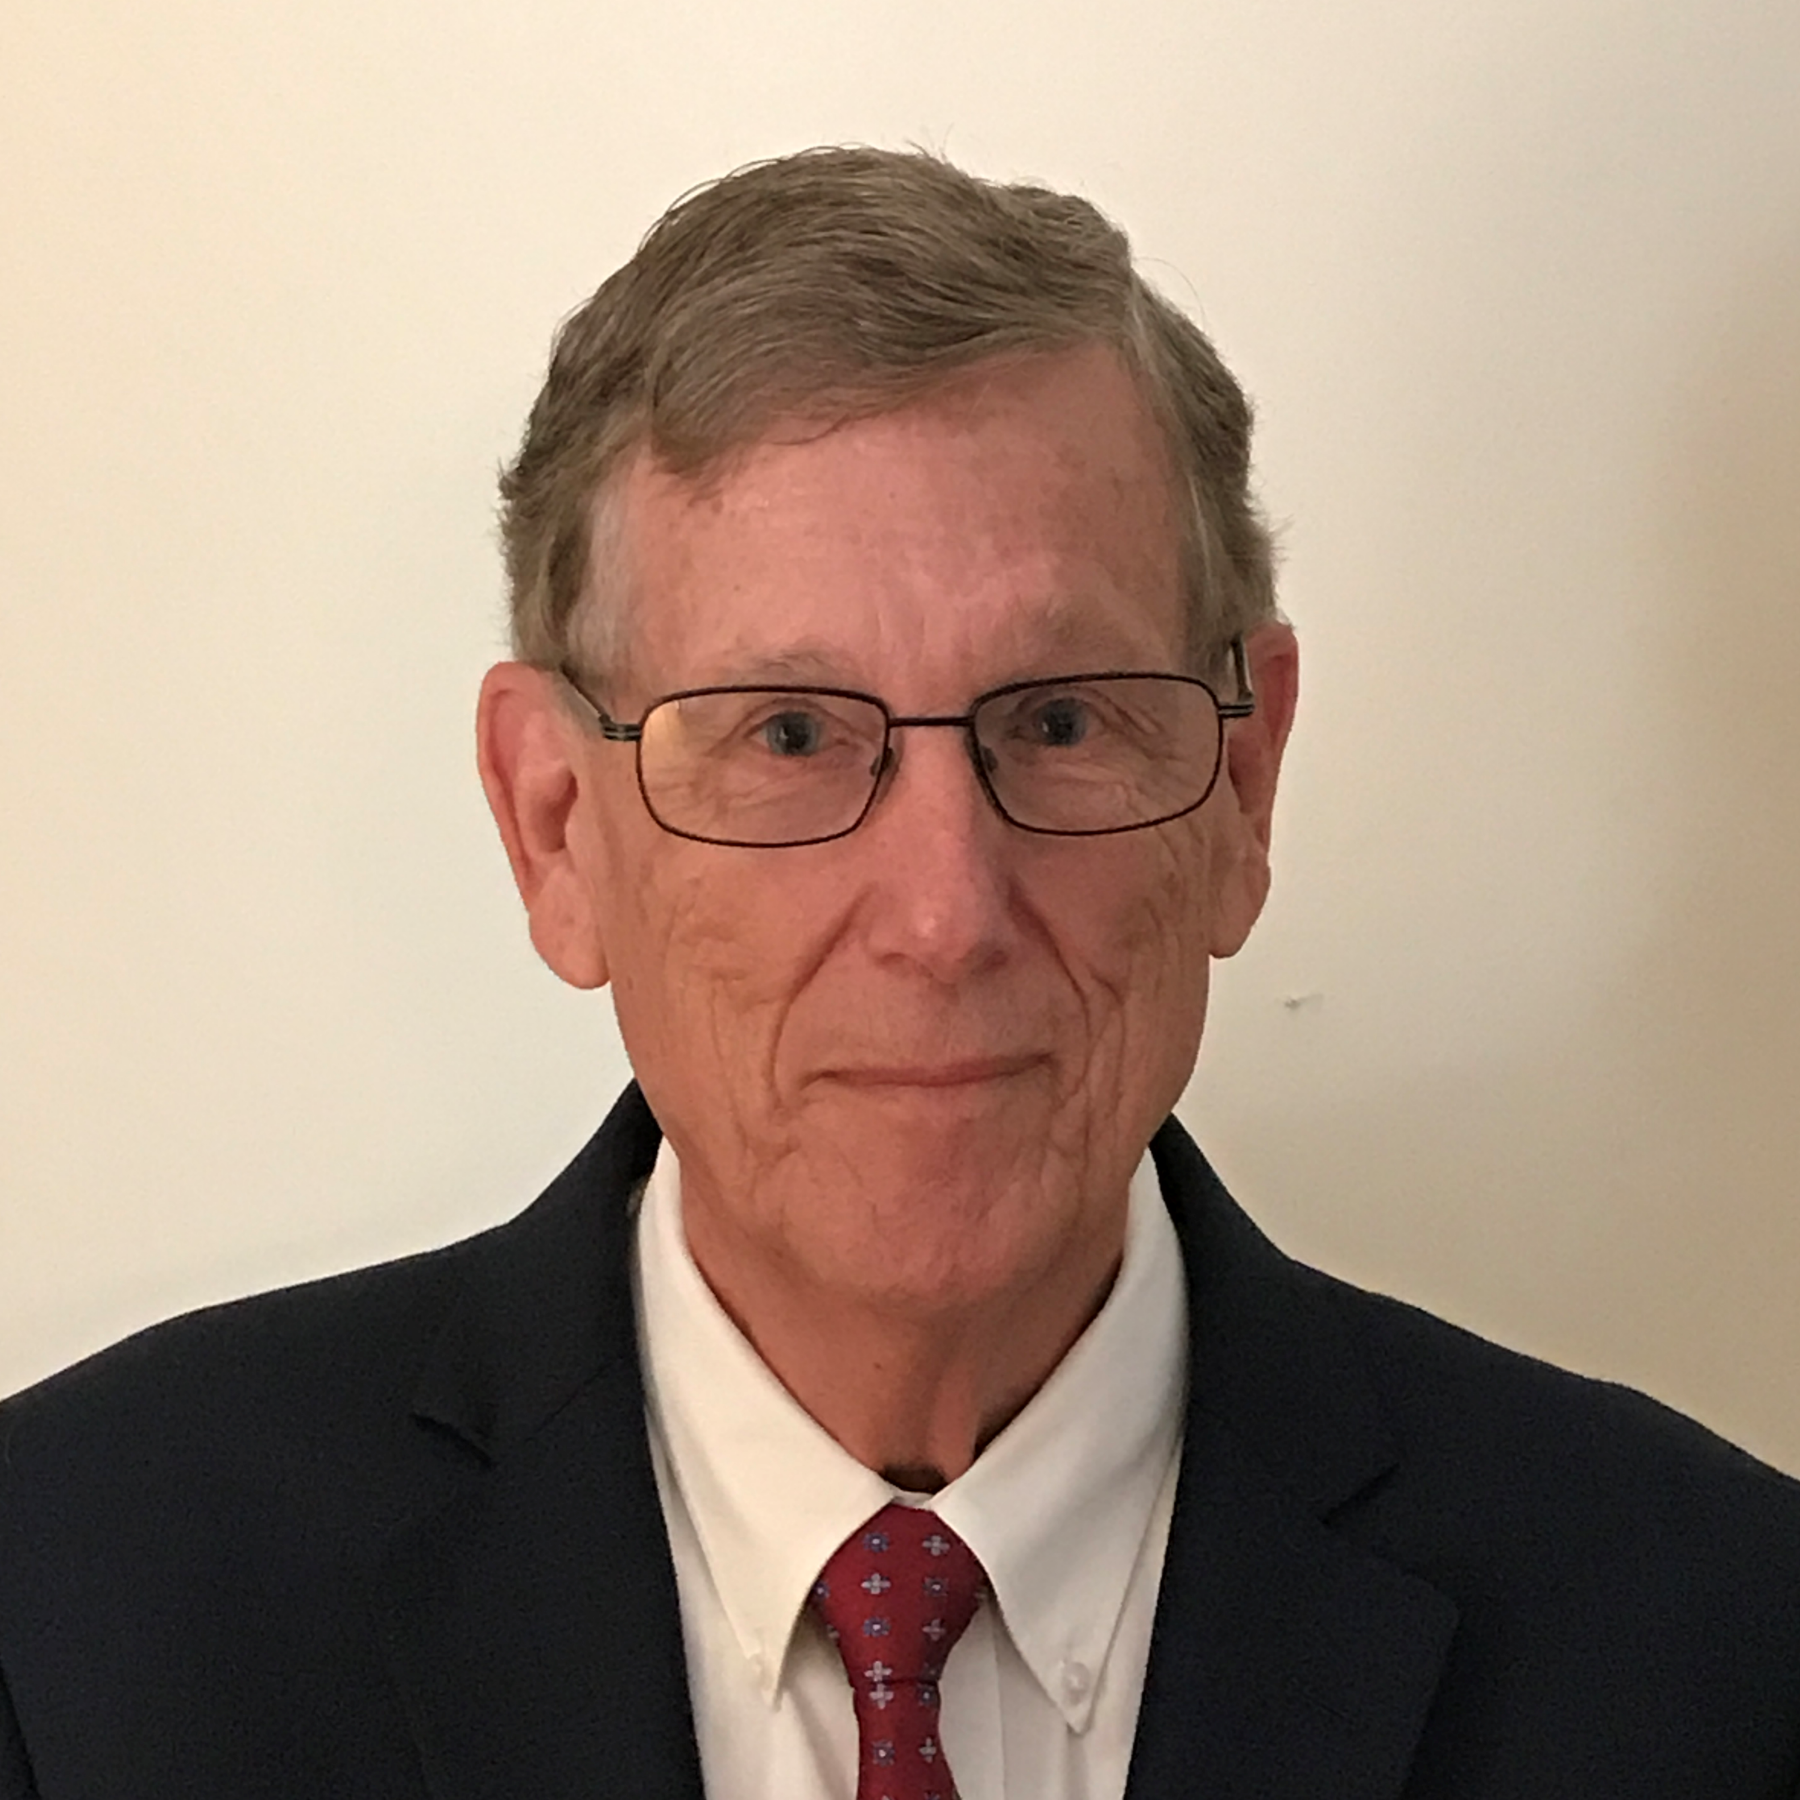 Richard D. Curtis, P.E. (Curtis Engineering Consulting Services, Inc.)